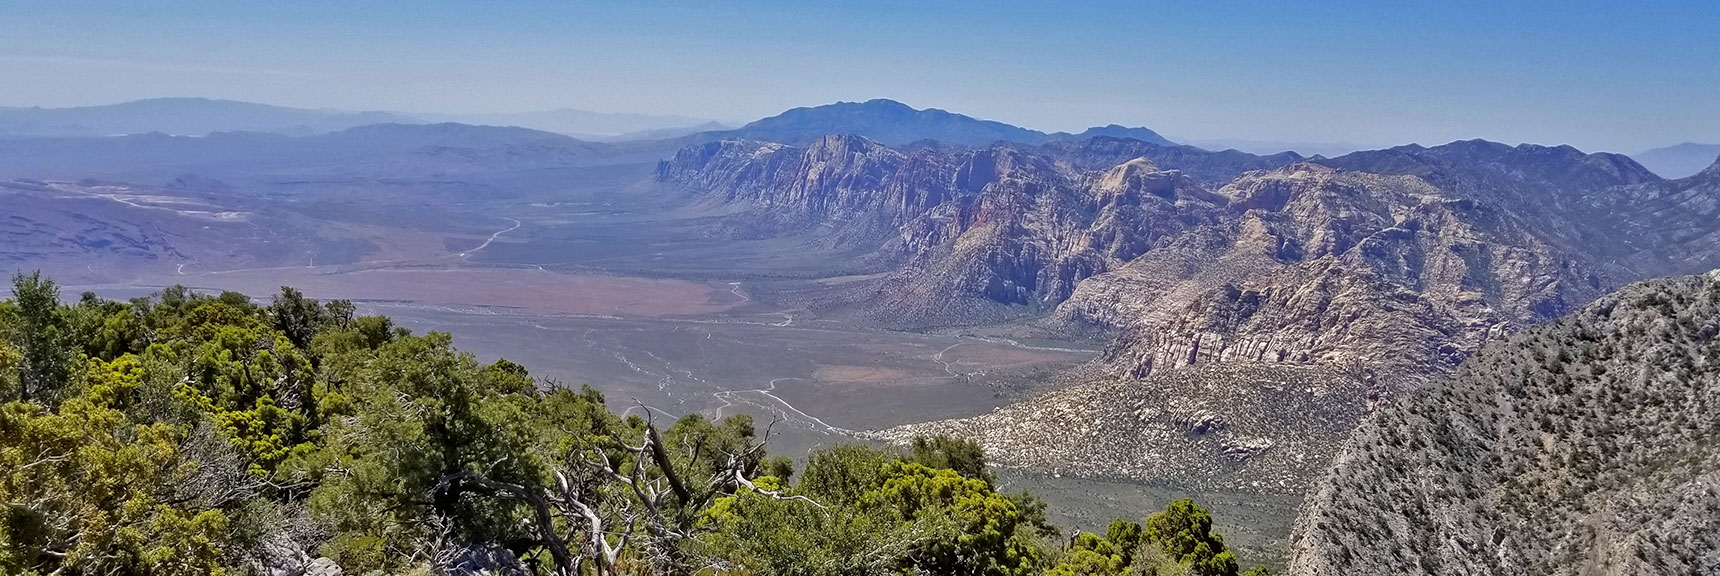 Red Rock National Park Viewed from Keystone Thrust West of El Padre Mountain, La Madre Mountains Wilderness, Nevada